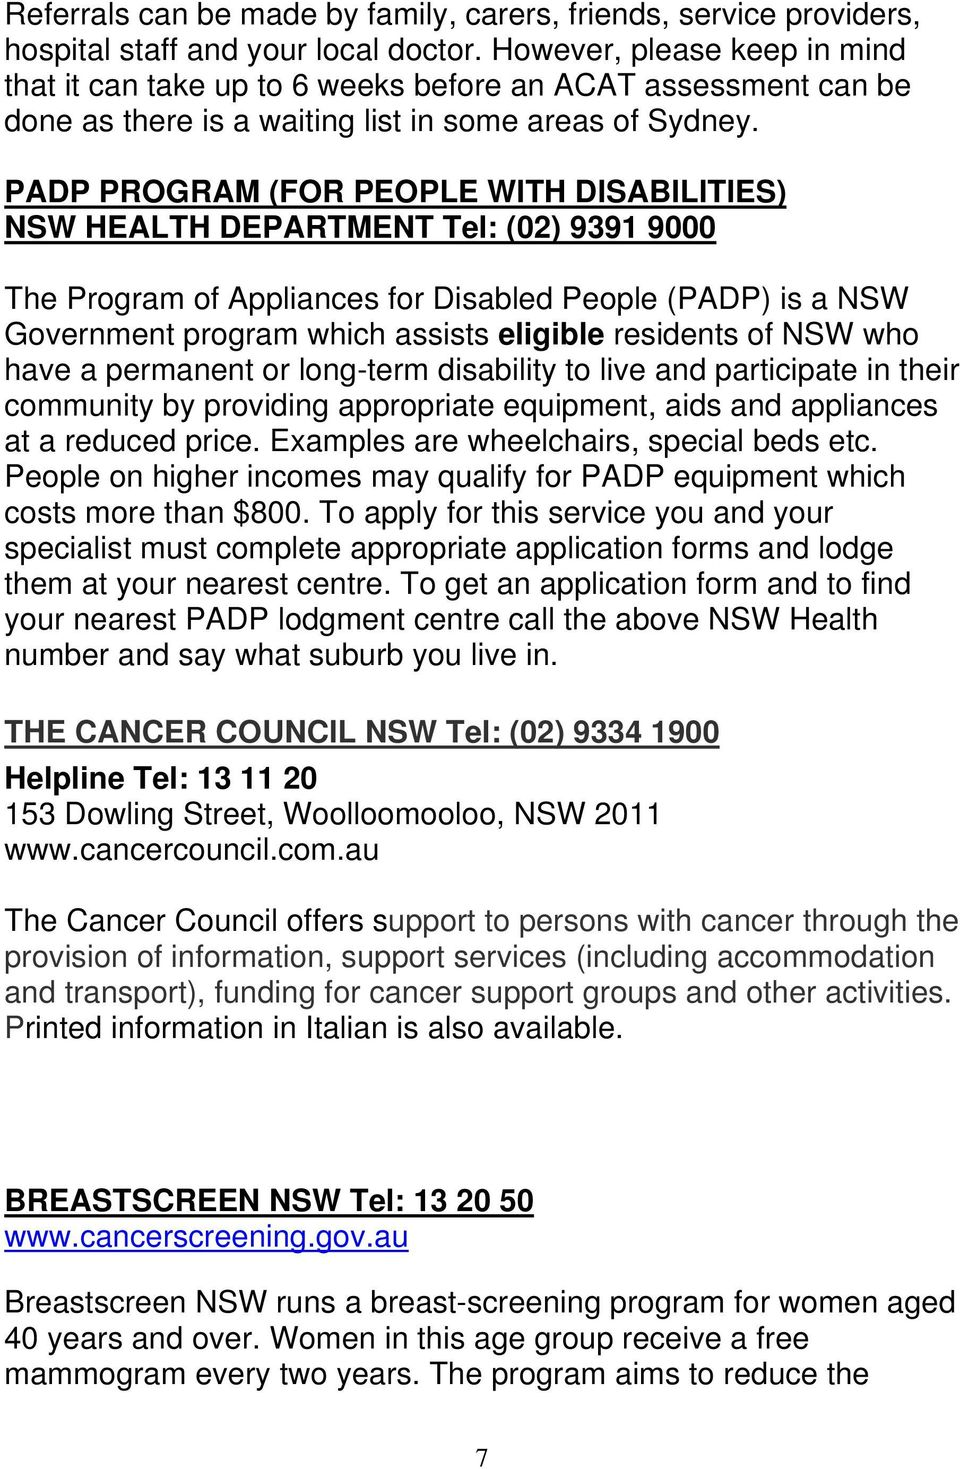 PADP PROGRAM (FOR PEOPLE WITH DISABILITIES) NSW HEALTH DEPARTMENT Tel: (02) 9391 9000 The Program of Appliances for Disabled People (PADP) is a NSW Government program which assists eligible residents